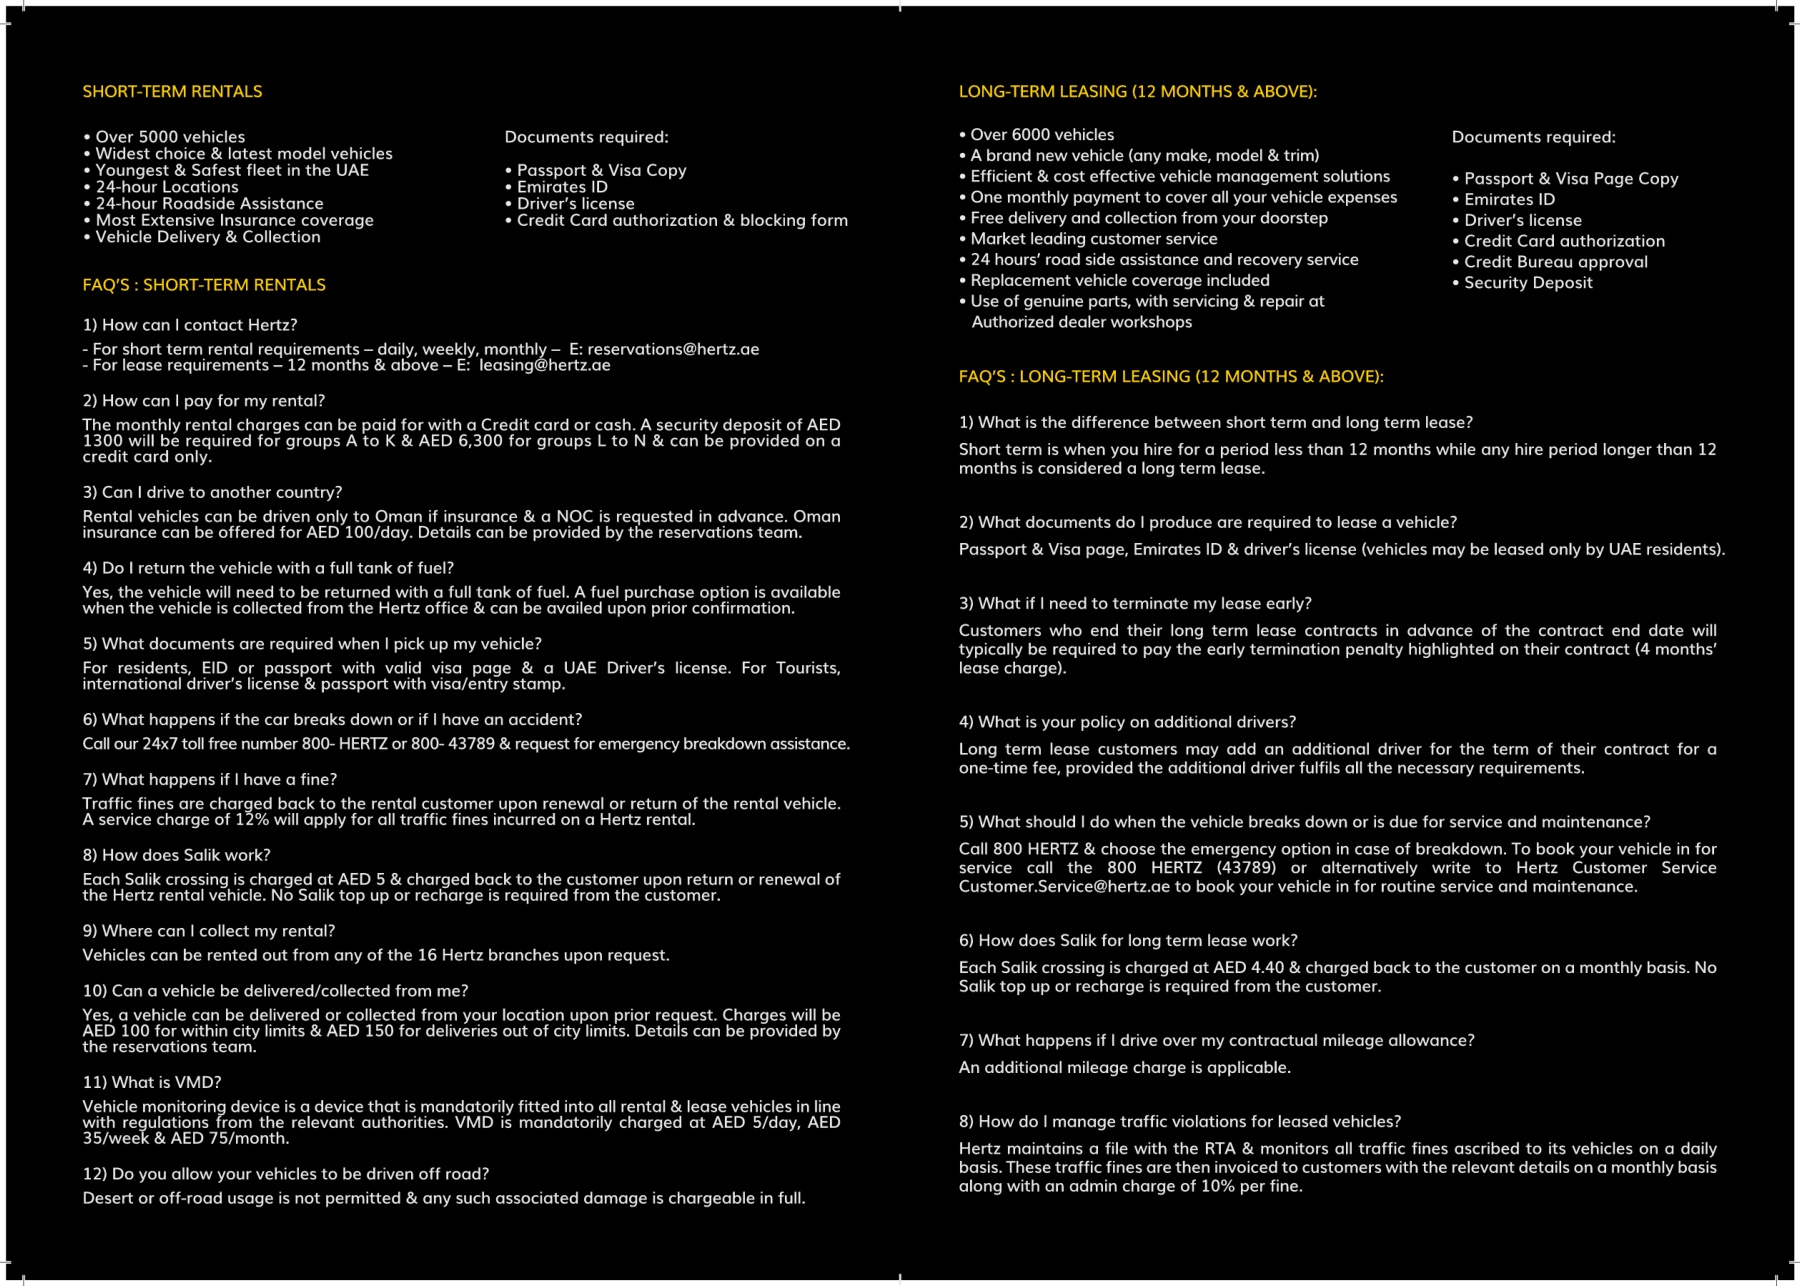 Hertz Monthly Rental >> Hertz Info 8 Aug 18 Pages 1 2 Text Version Anyflip